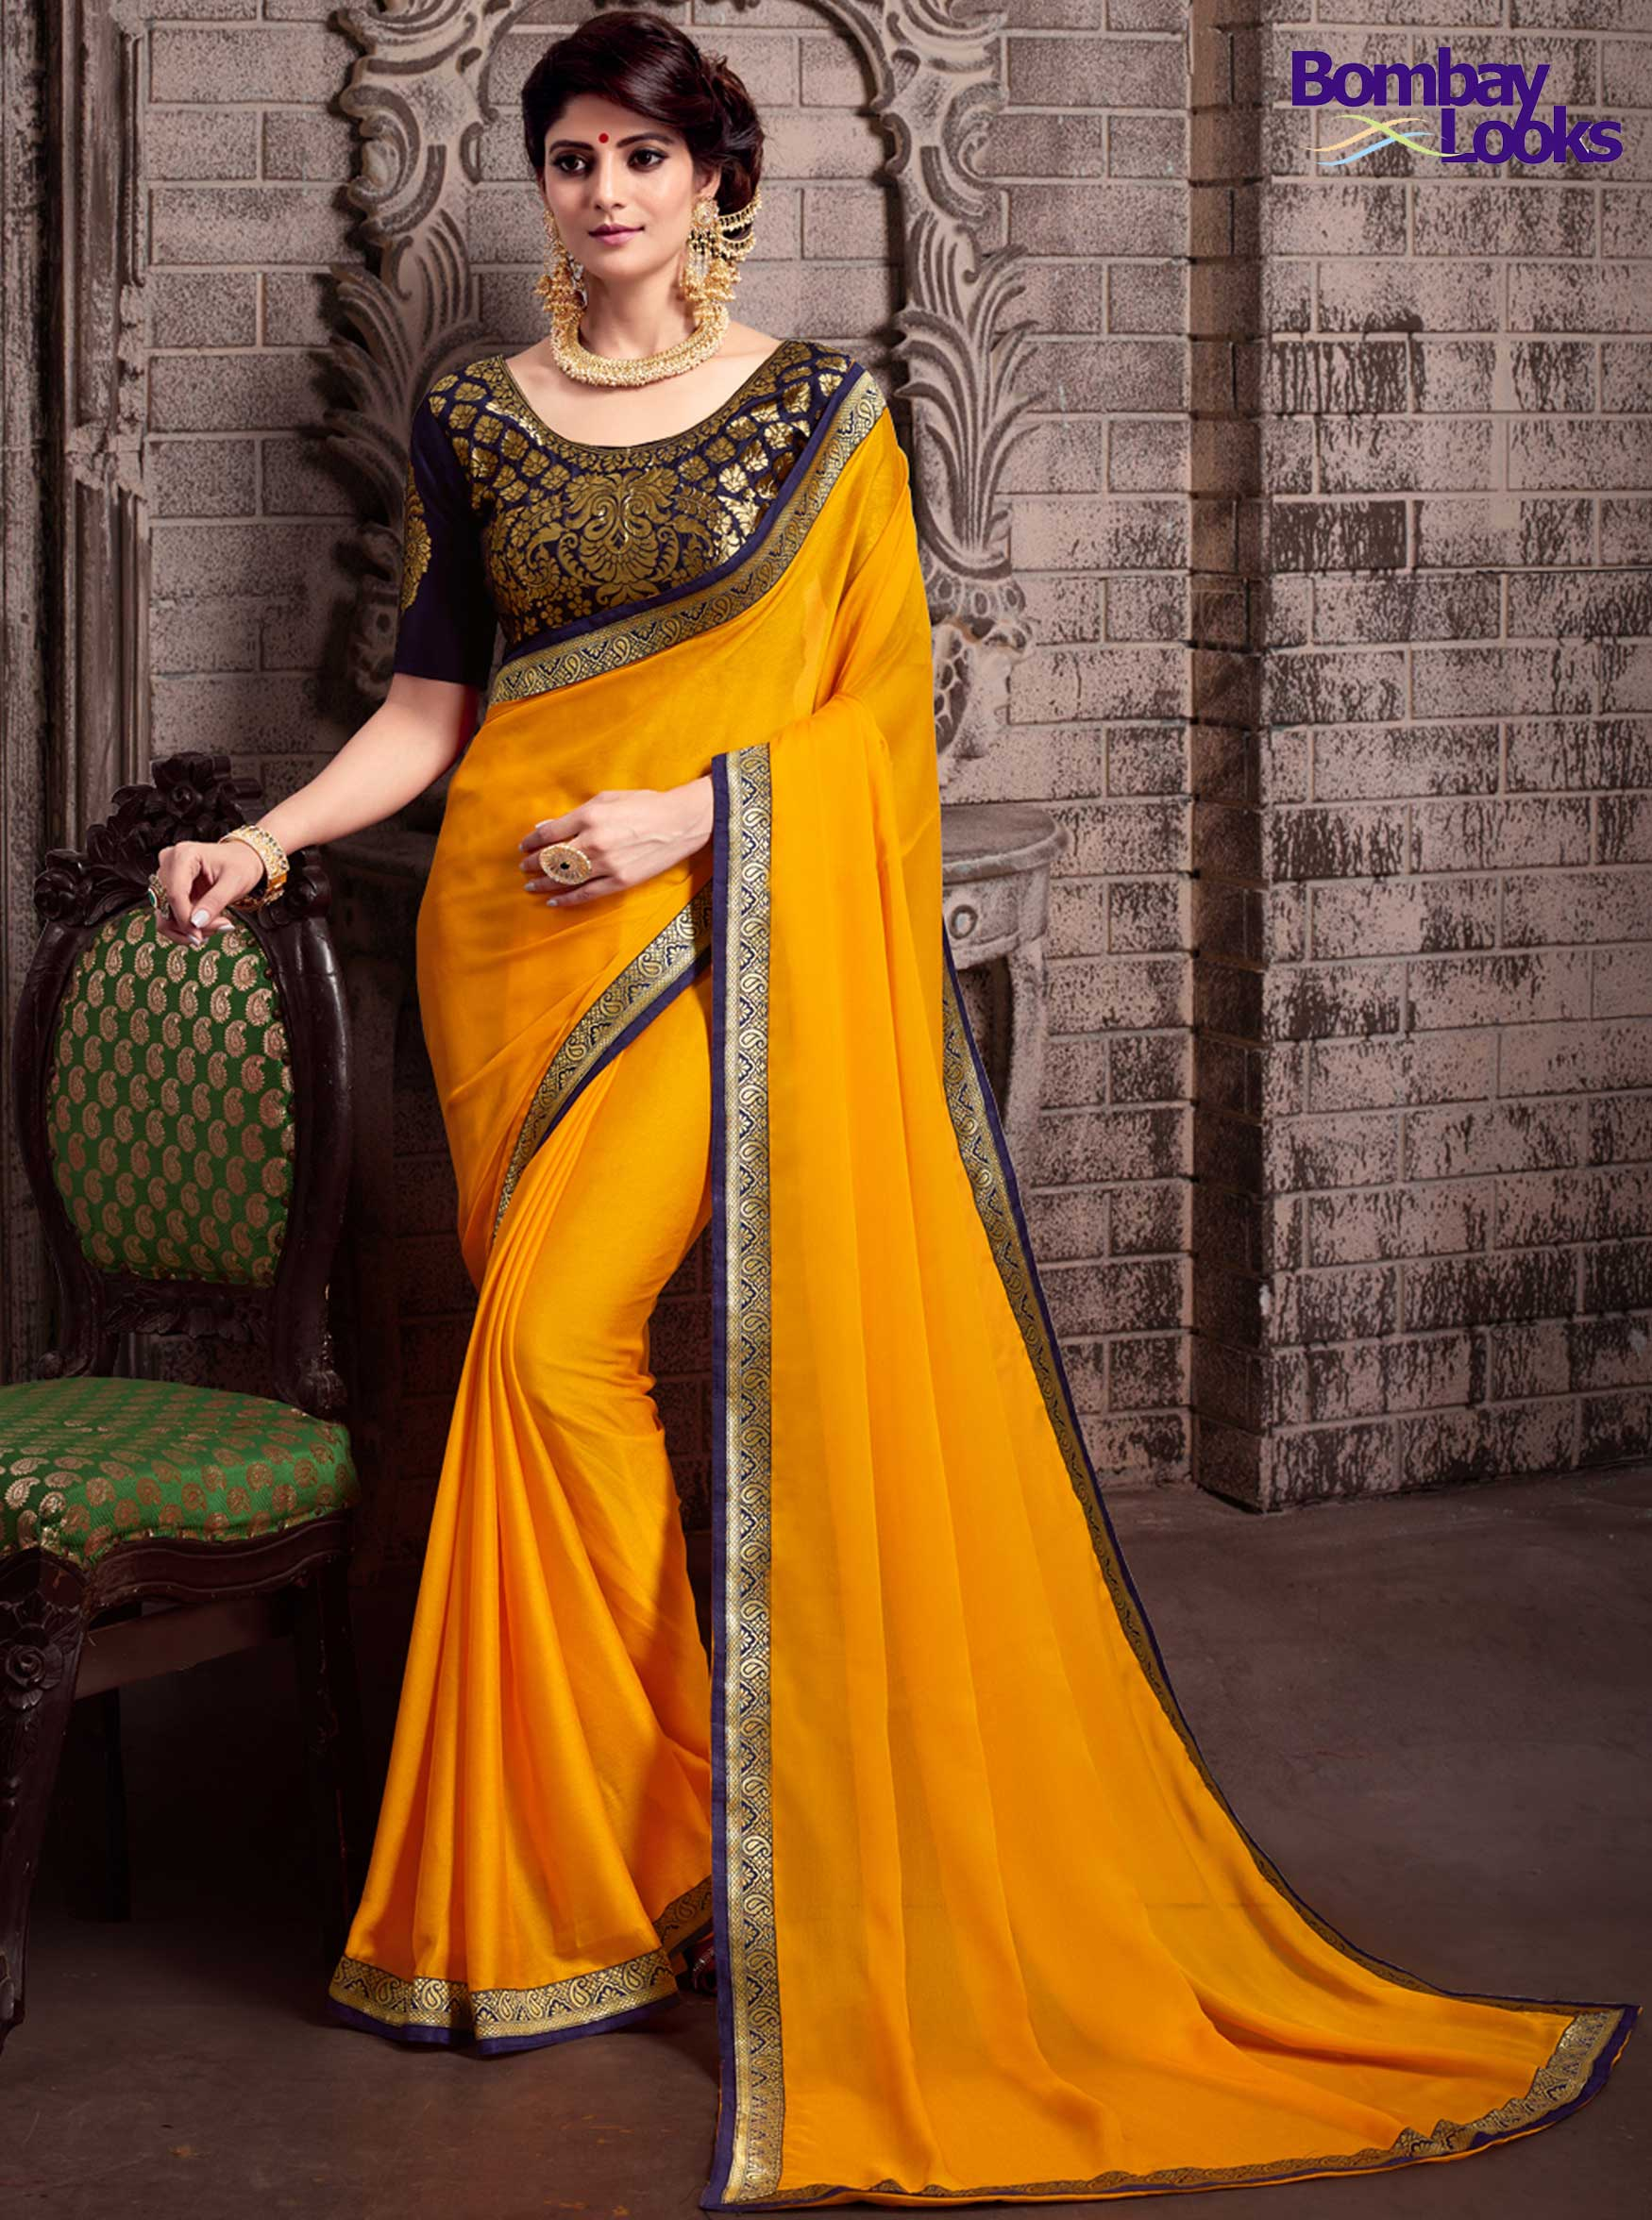 Gorgeous Saffron chiffon saree with brocade blouse